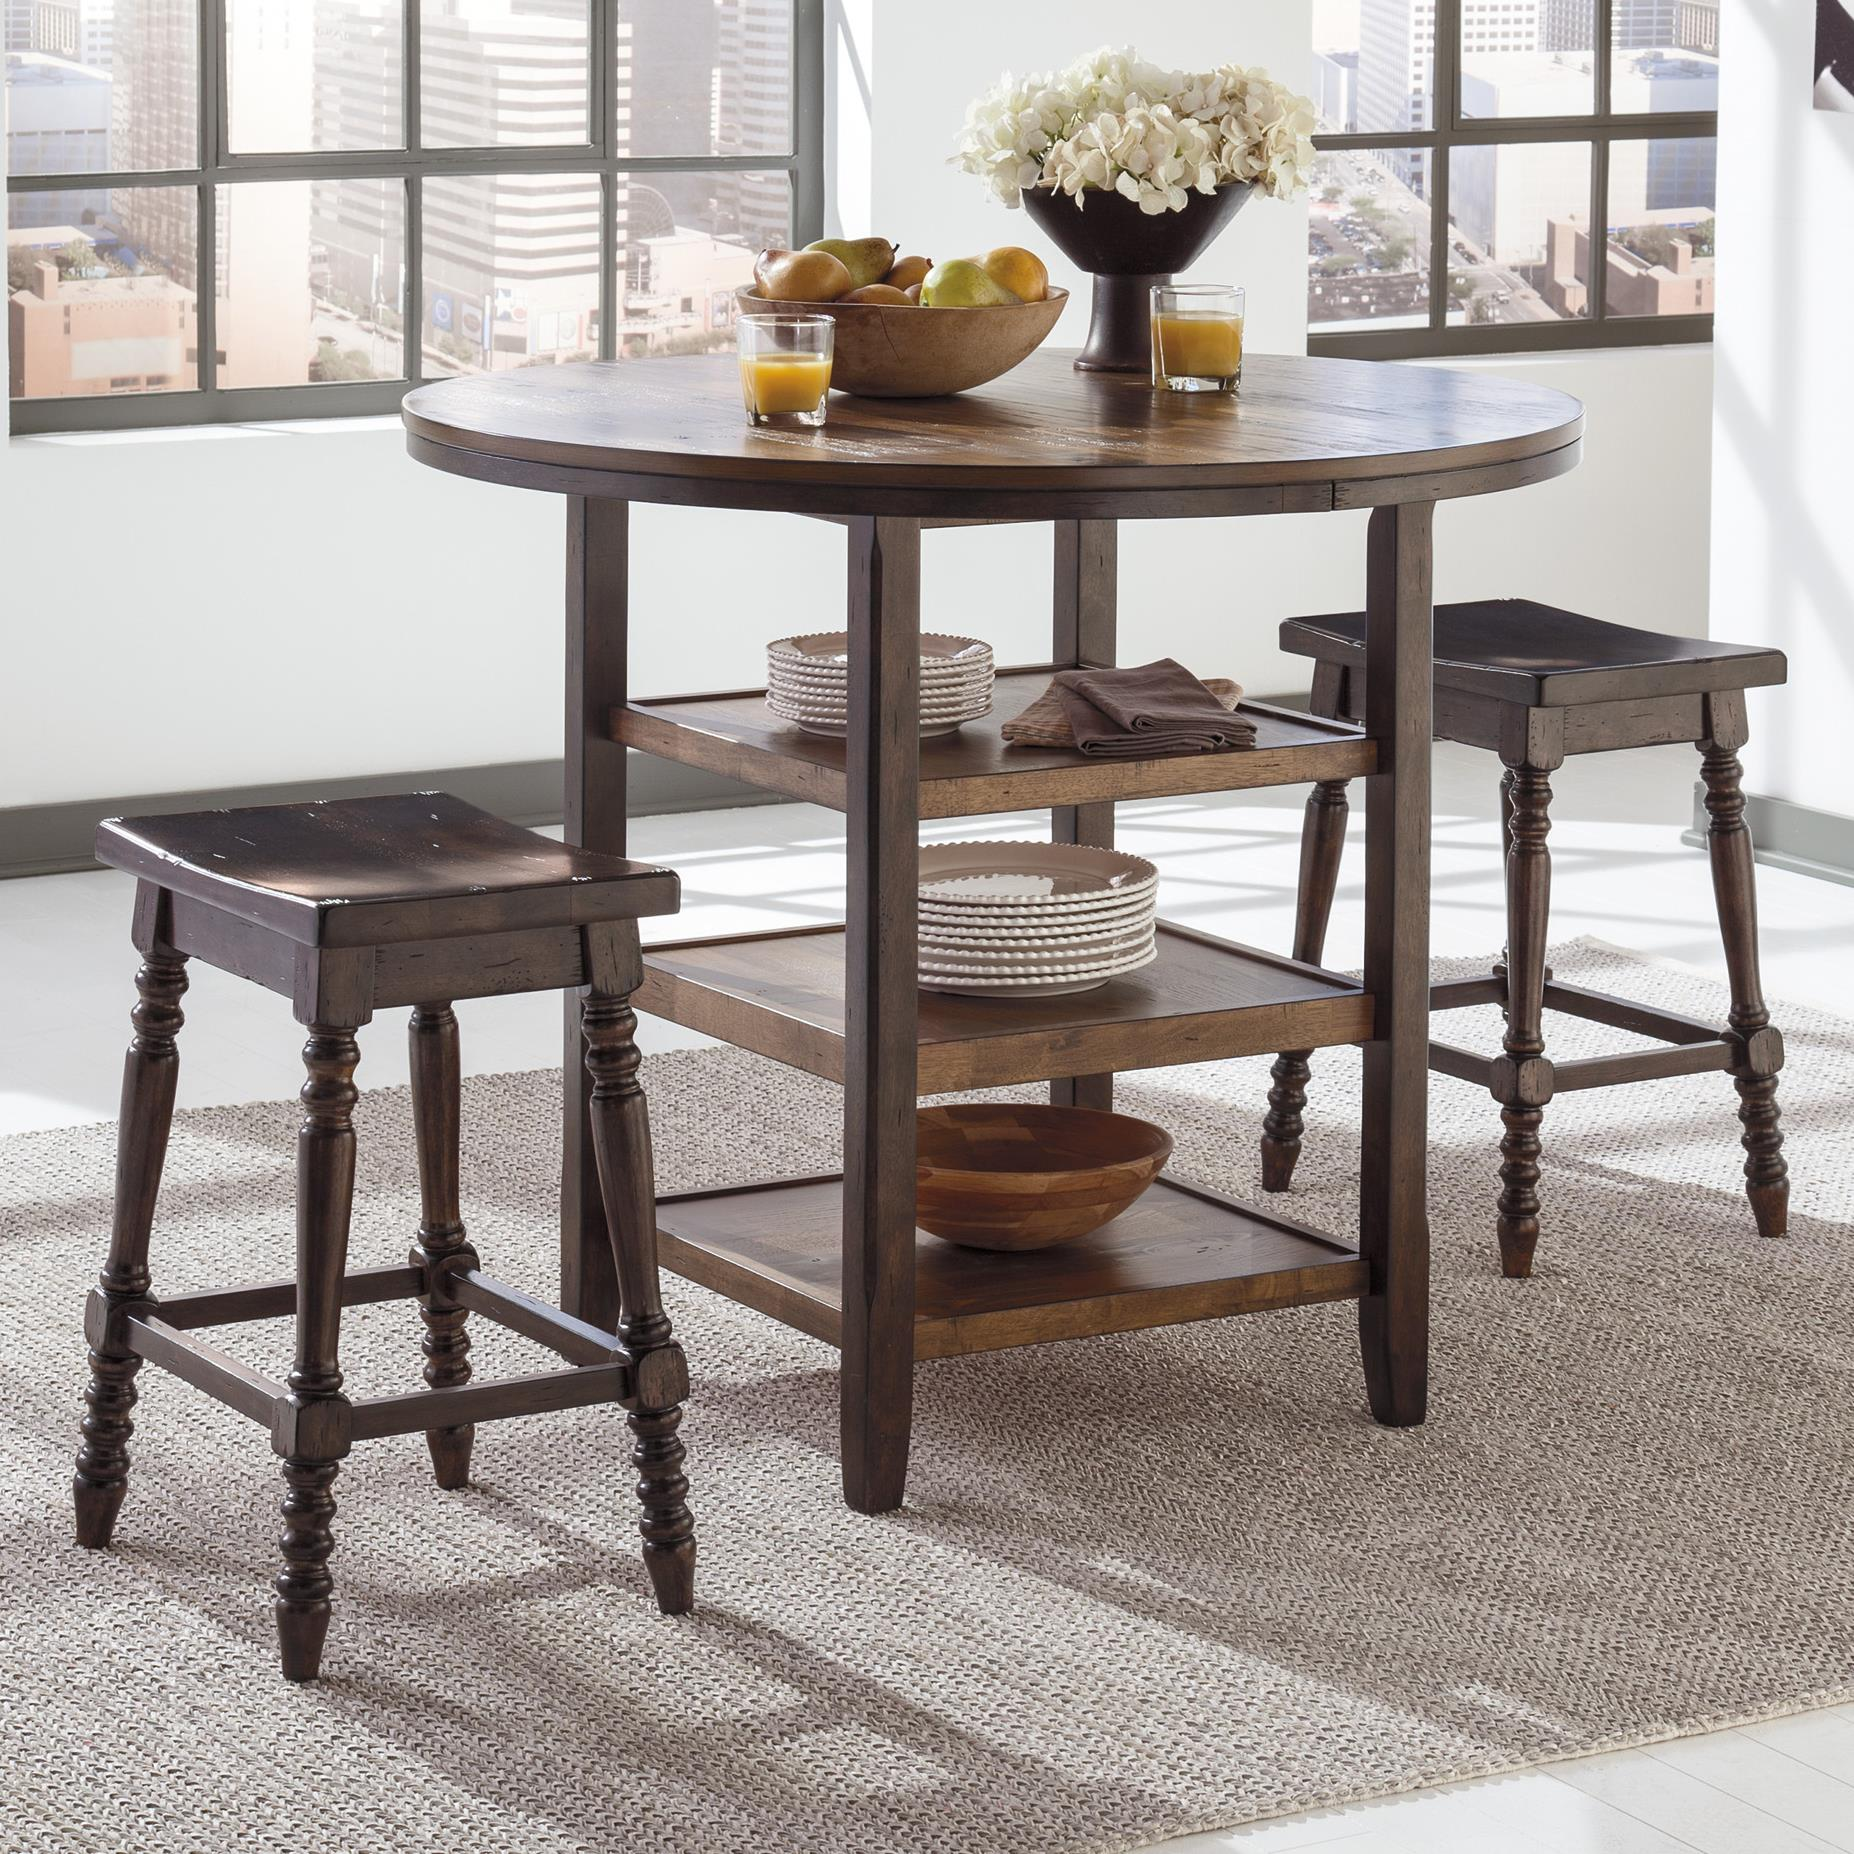 Signature Design by Ashley Moriann 3-Piece Counter Table Set - Item Number: D608-13+2x124